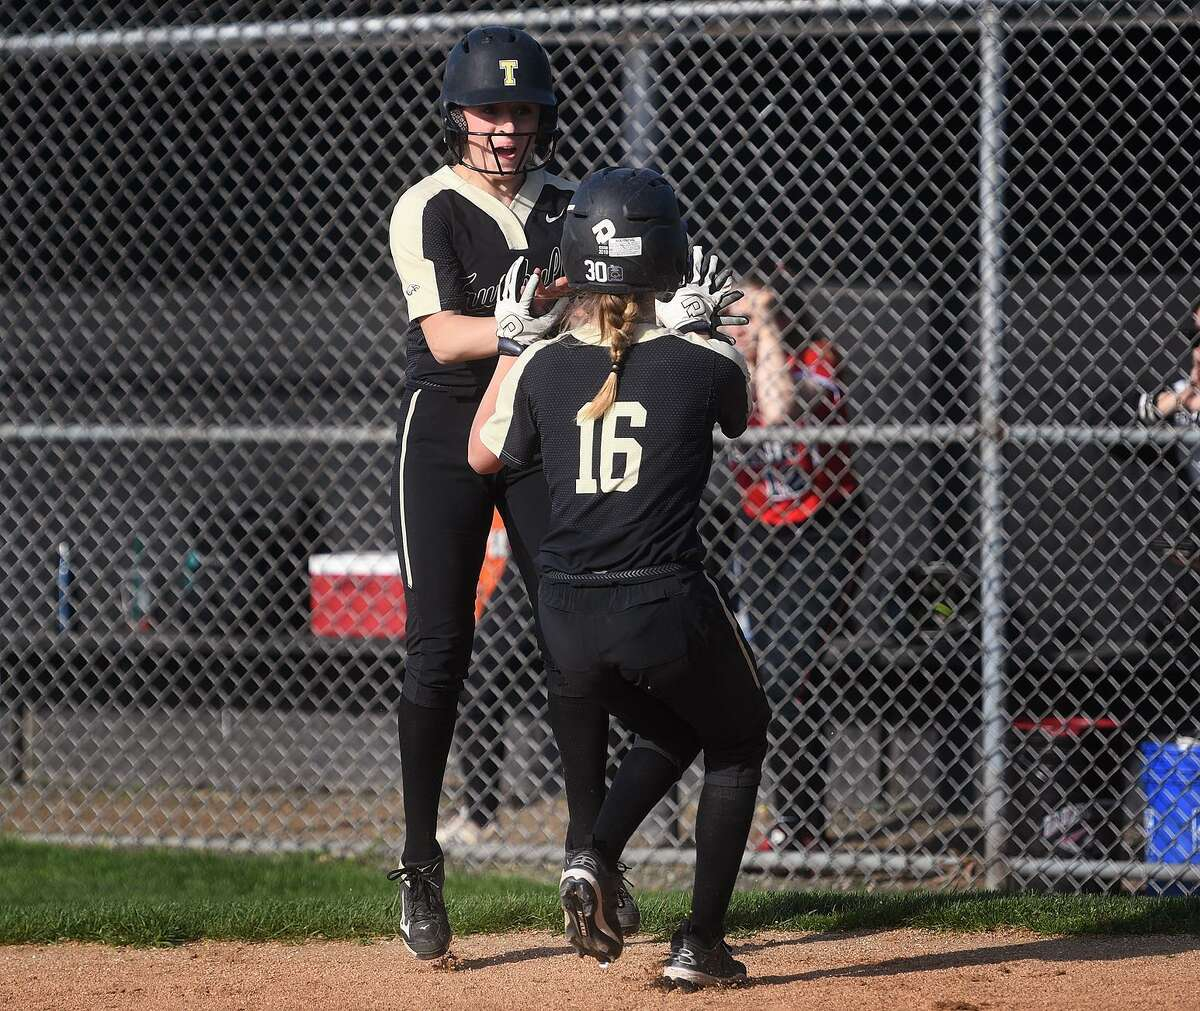 Trumbull's Maggie Coffin, left, high fives teammate Kiley Barbagallo as she crosses home plate in a five run second inning during their softball game with Fairfield Warde at Trumbull High School in Trumbull, Conn. on Tuesday, May 7, 2019.